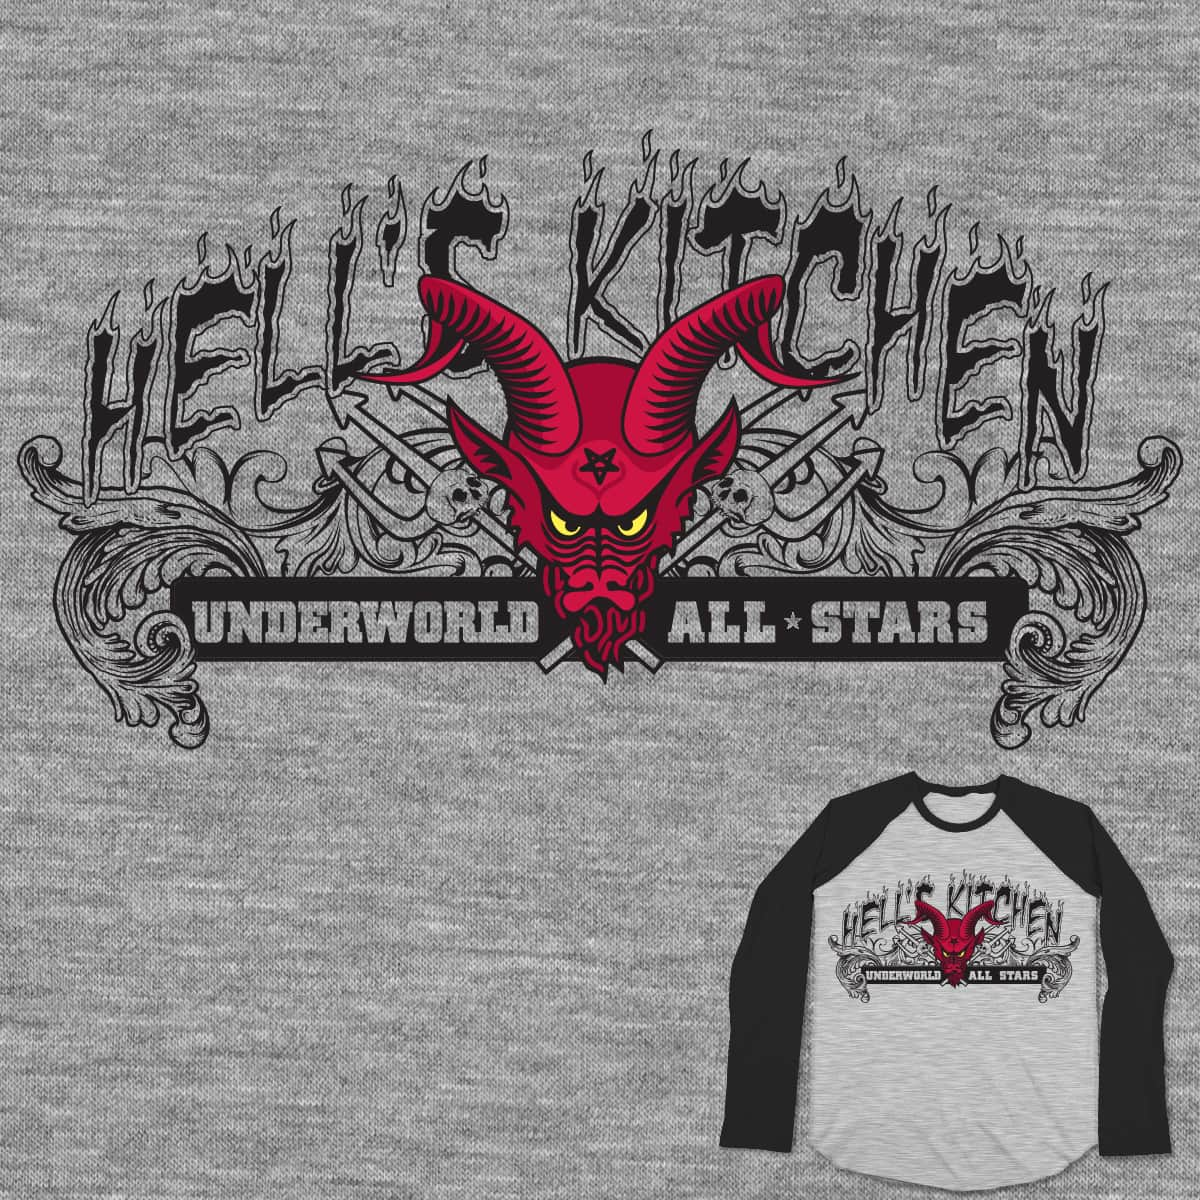 Hell's Kitchen Underworld All Stars by persh91 on Threadless